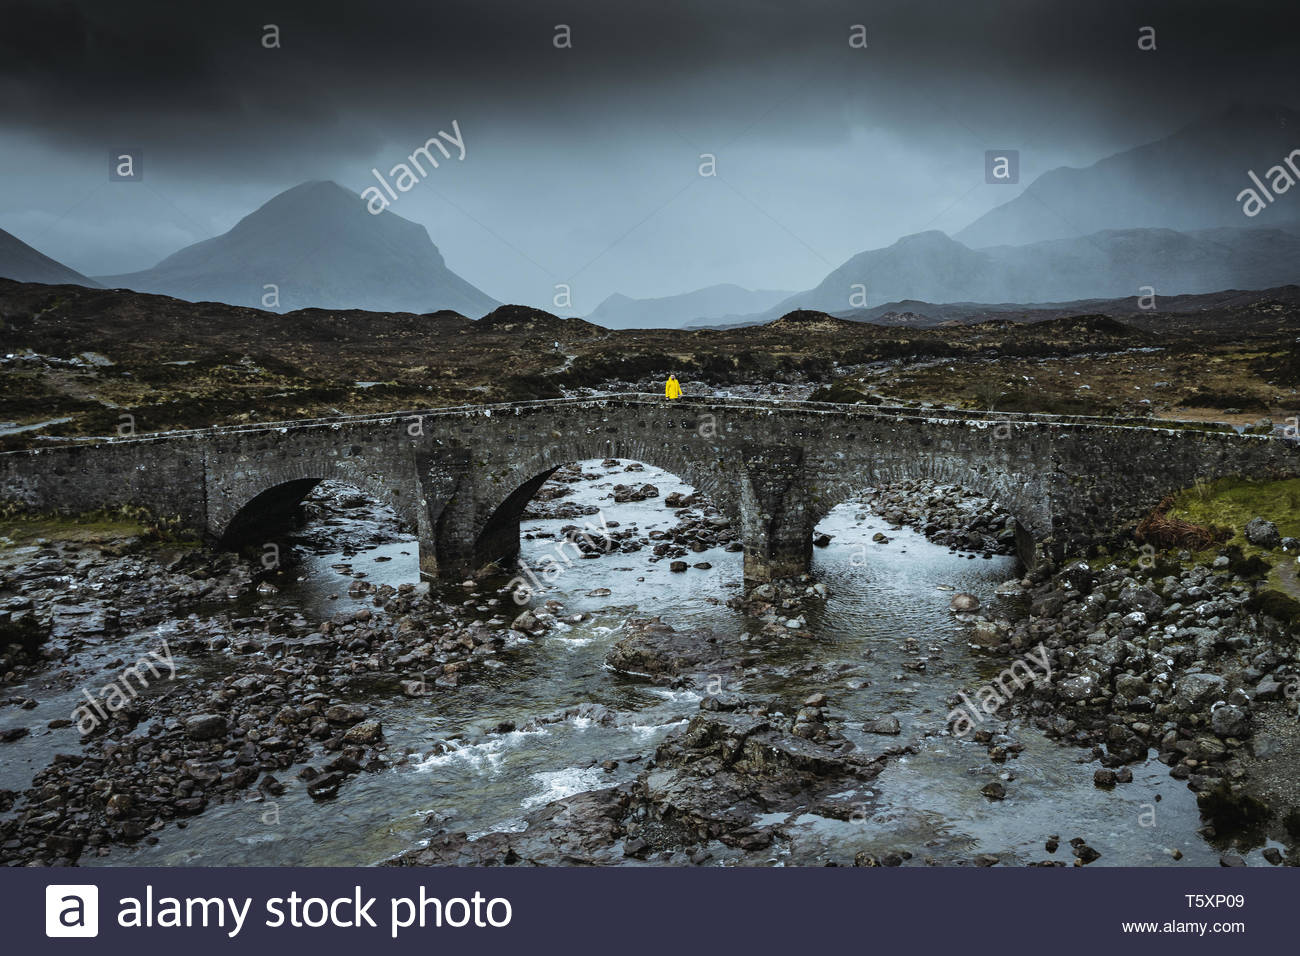 Sligachan old bridge in Scotland - Stock Image